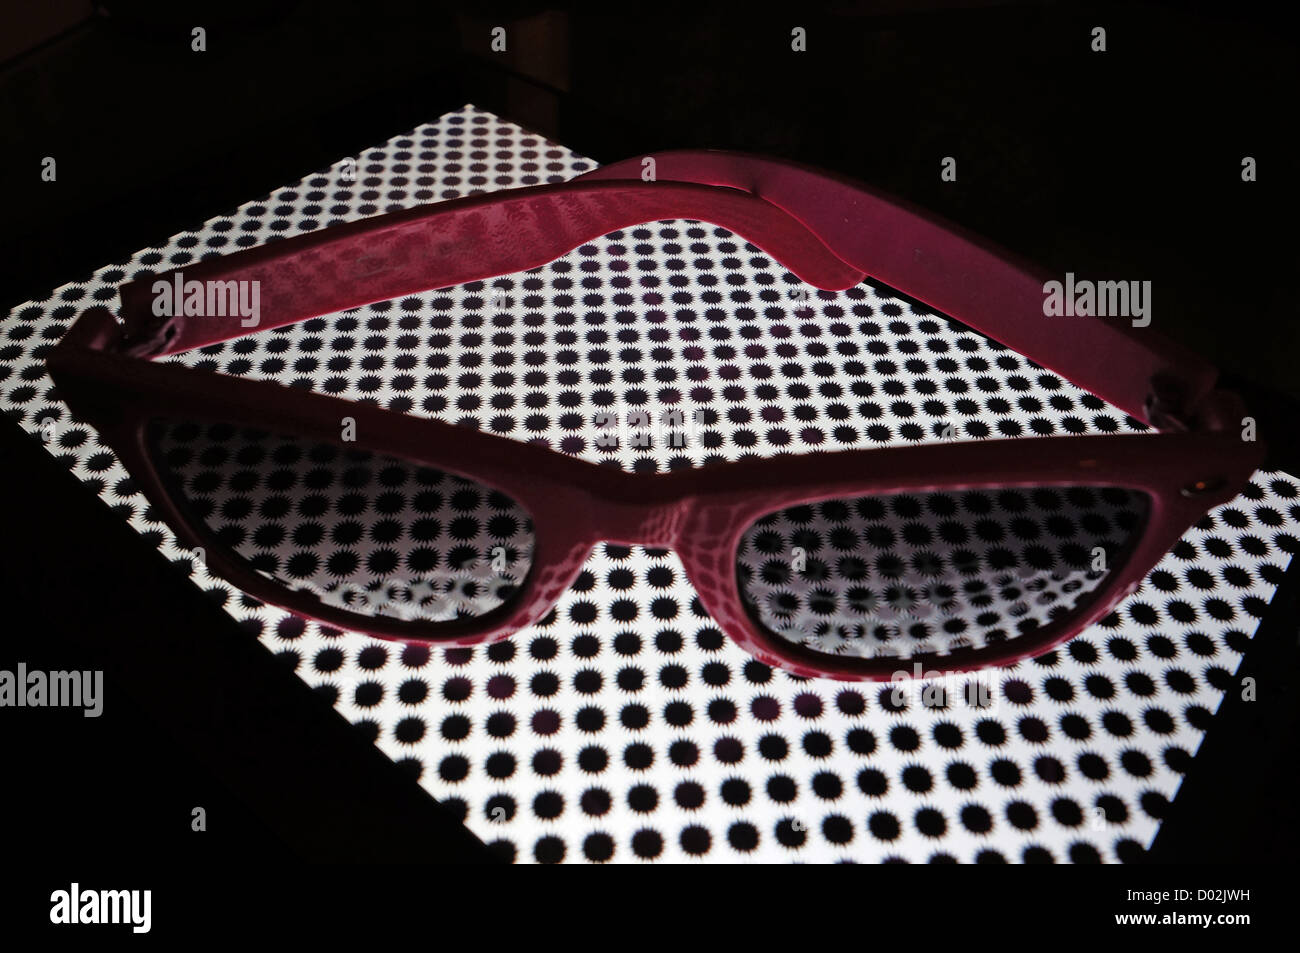 Sunglasses on chequered surface - Stock Image